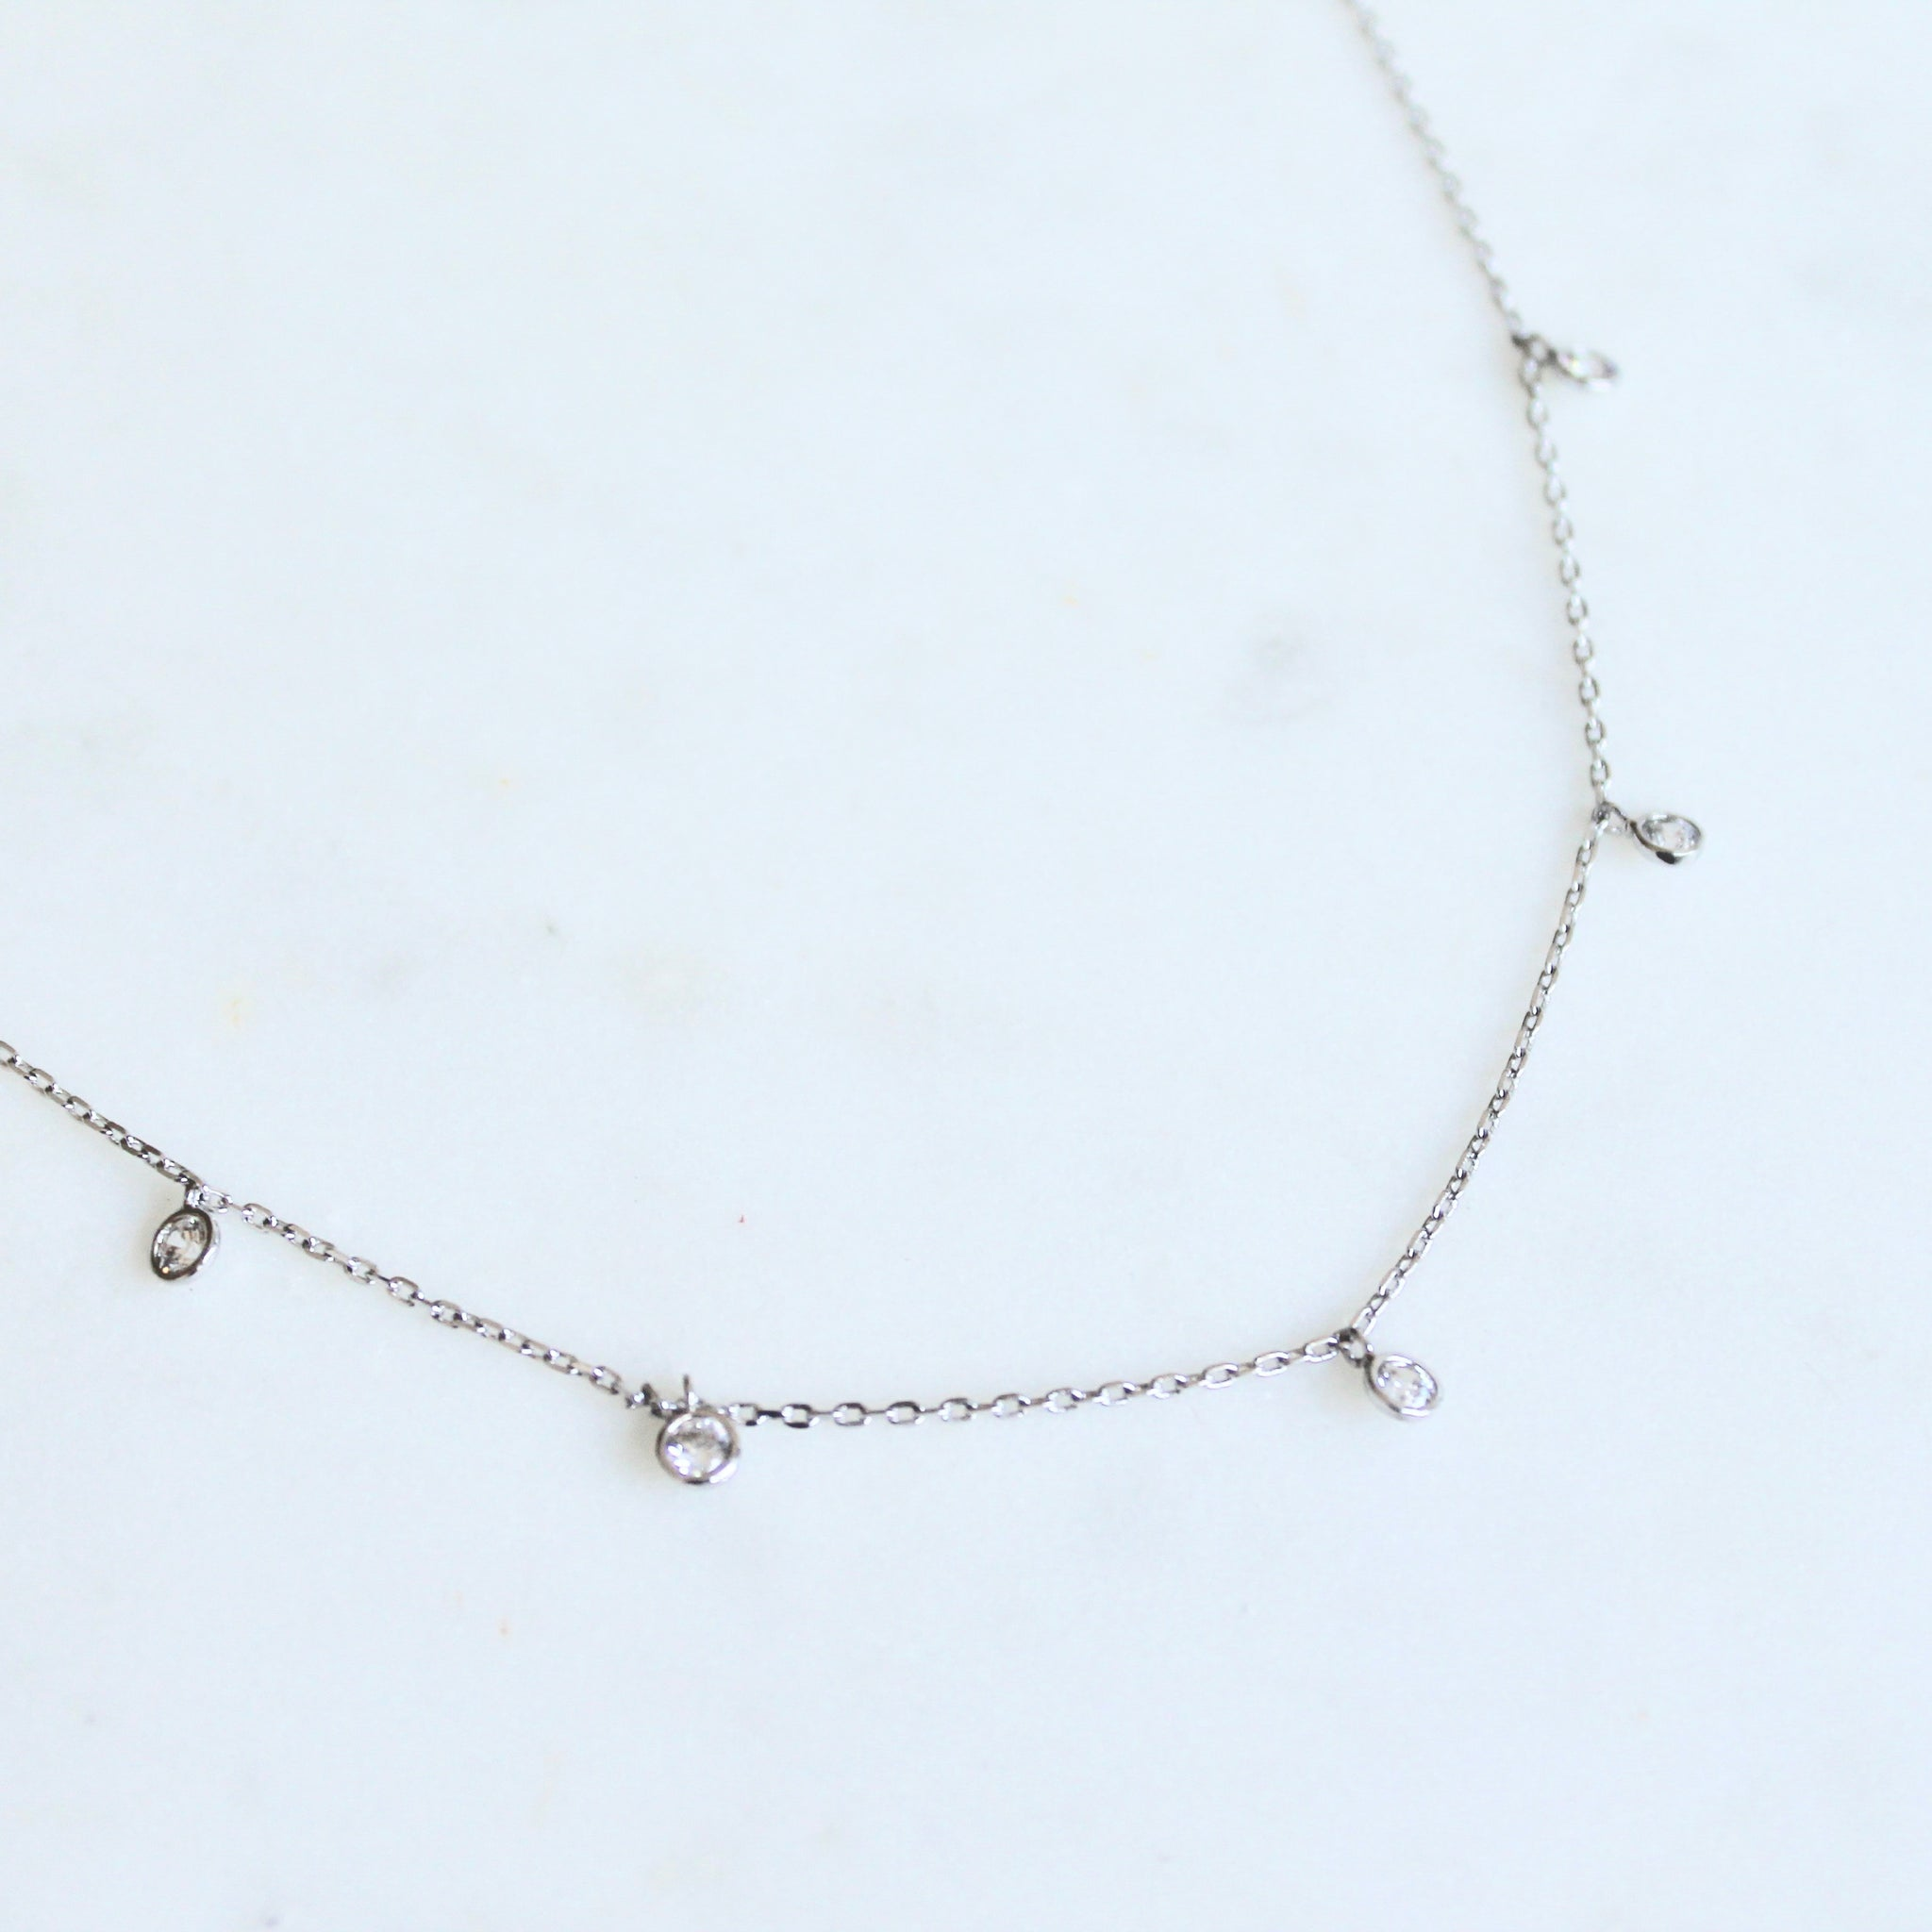 Crystal drop dainty necklace - Lily Lough Jewelry